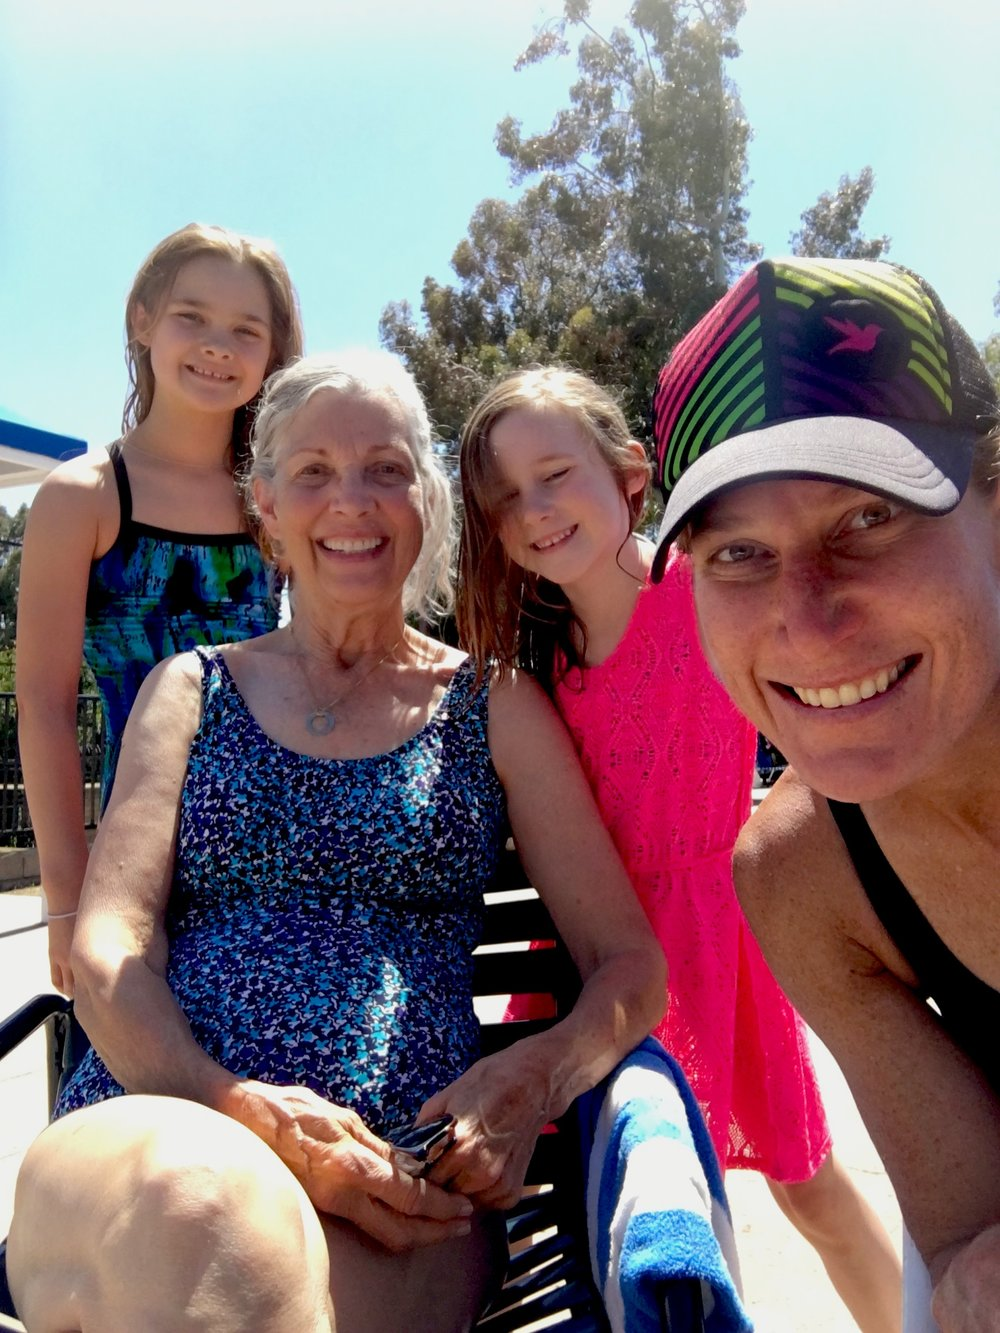 Swimming ladies. Screen left, Jenna, my mom, Kate, and a proud Aunt.